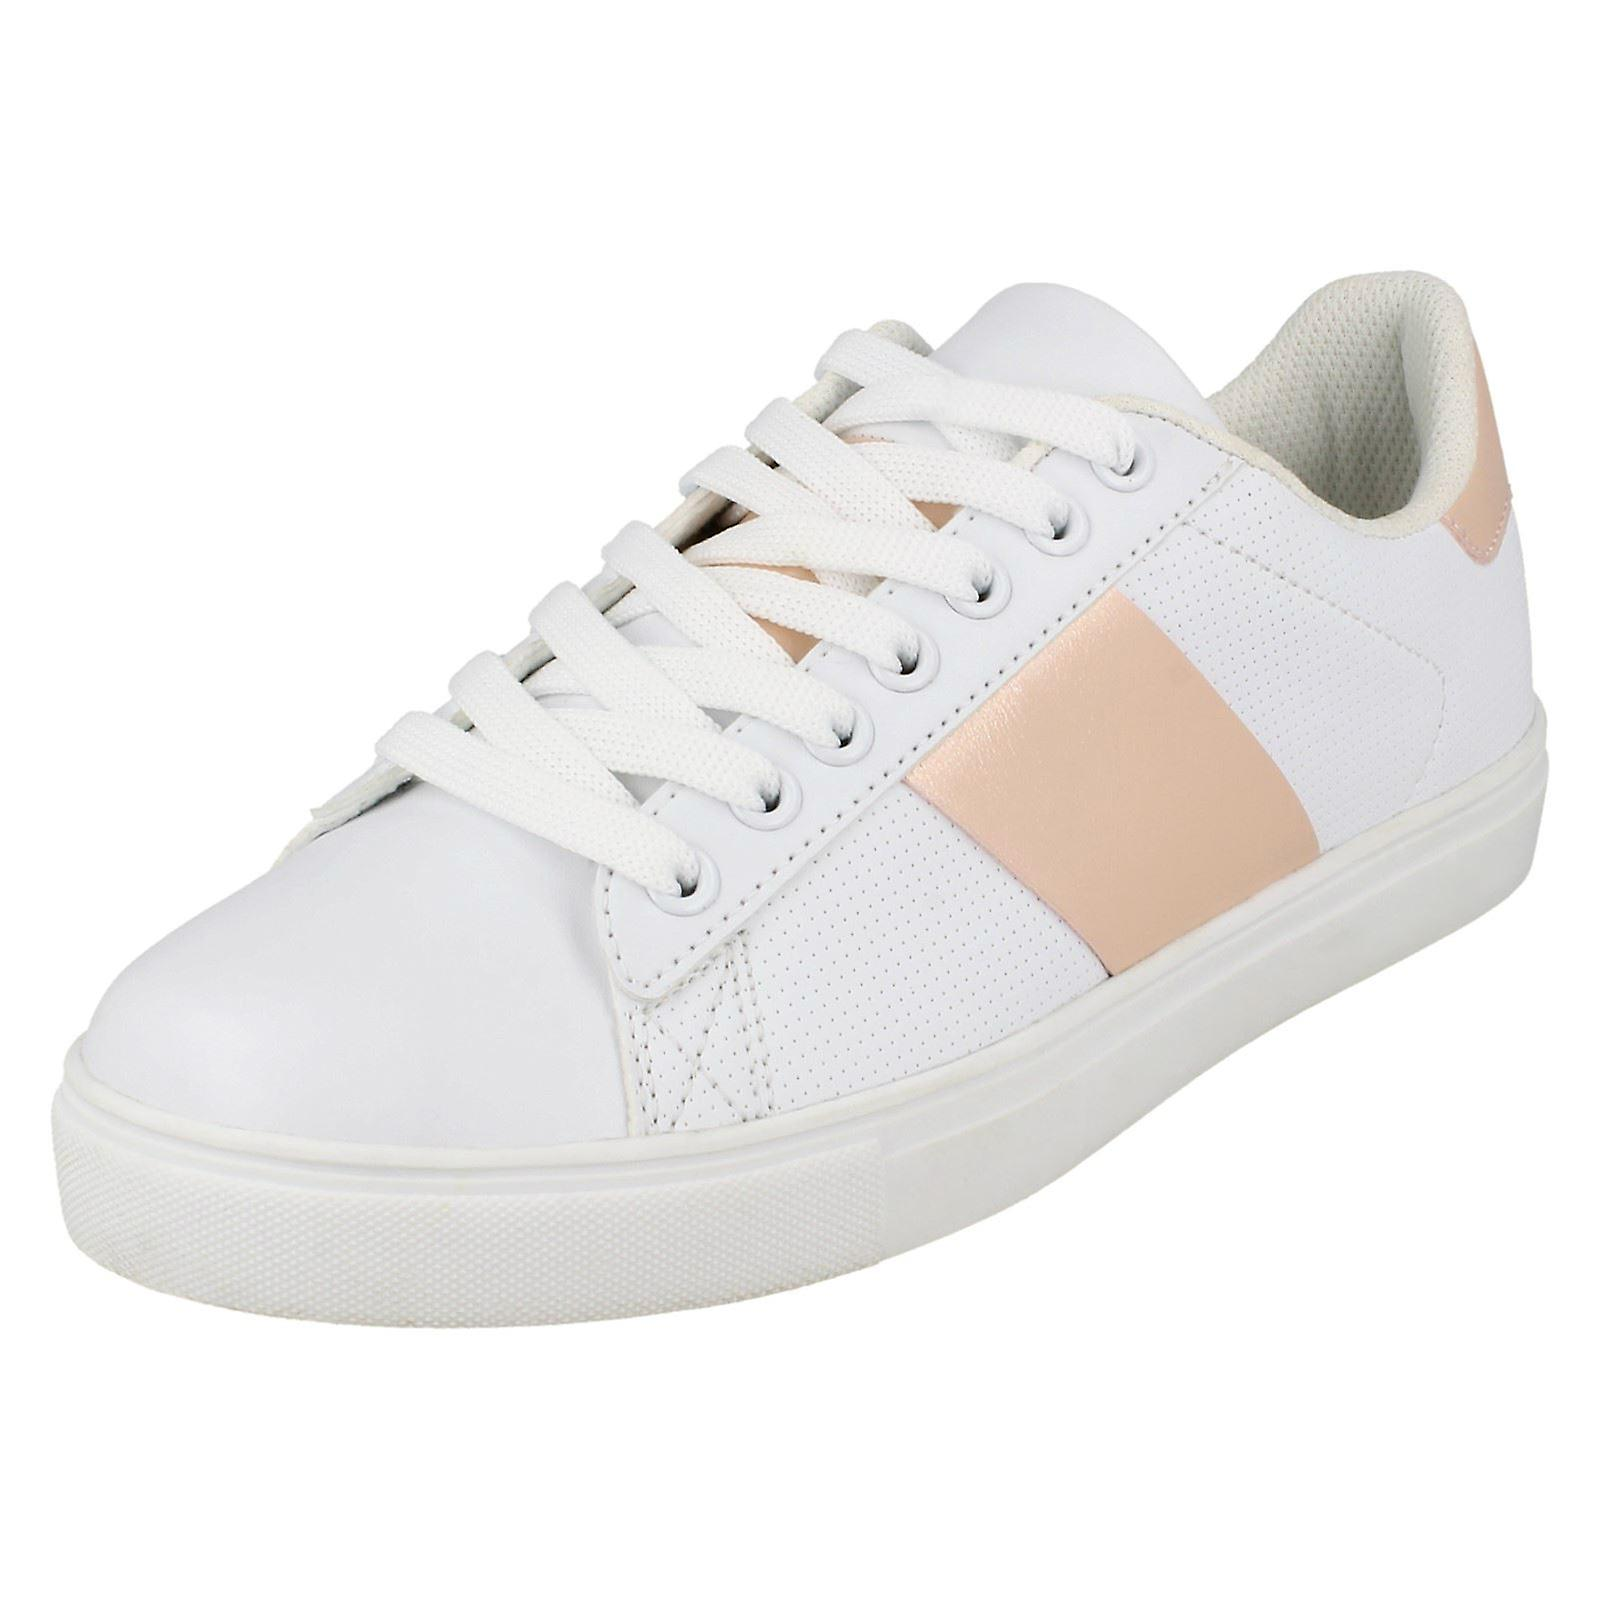 Ladies Spot On Flat Lace Up Trainers F7046 yQxA2